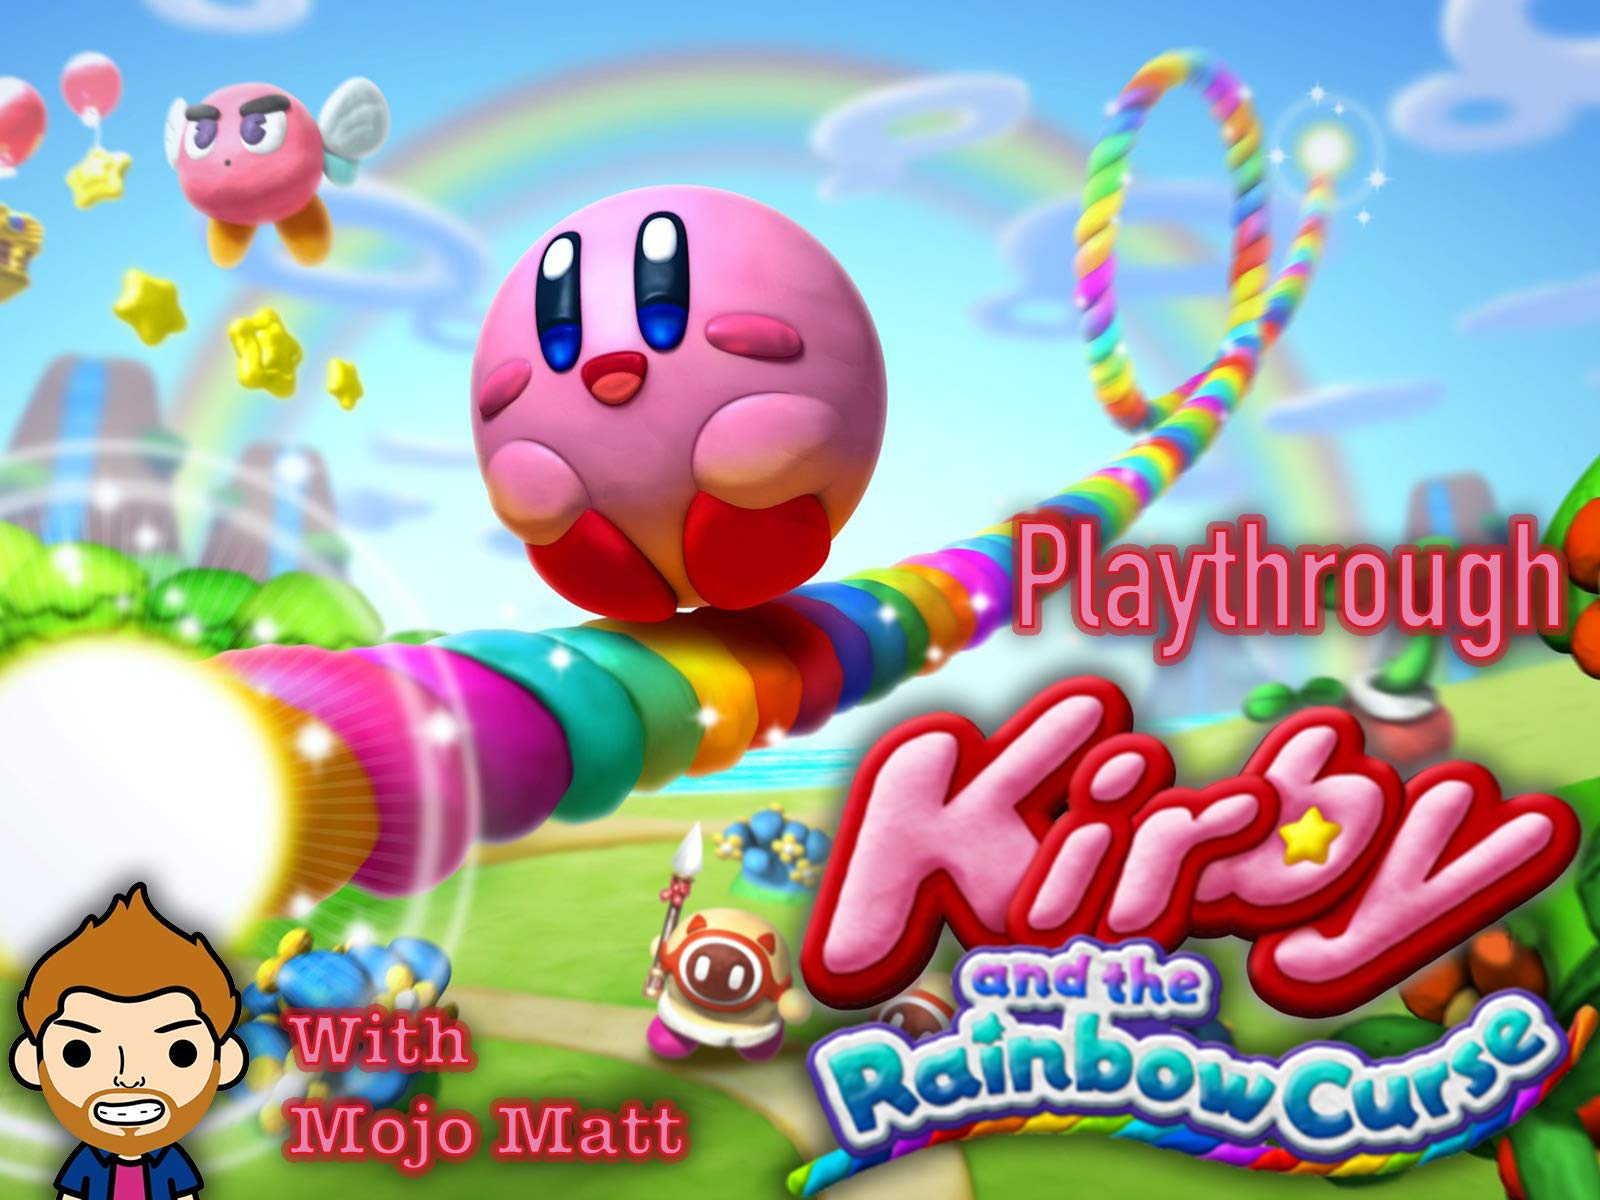 Kirby And The Rainbow Curse Playthrough With Mojo Matt on Amazon Prime Instant Video UK